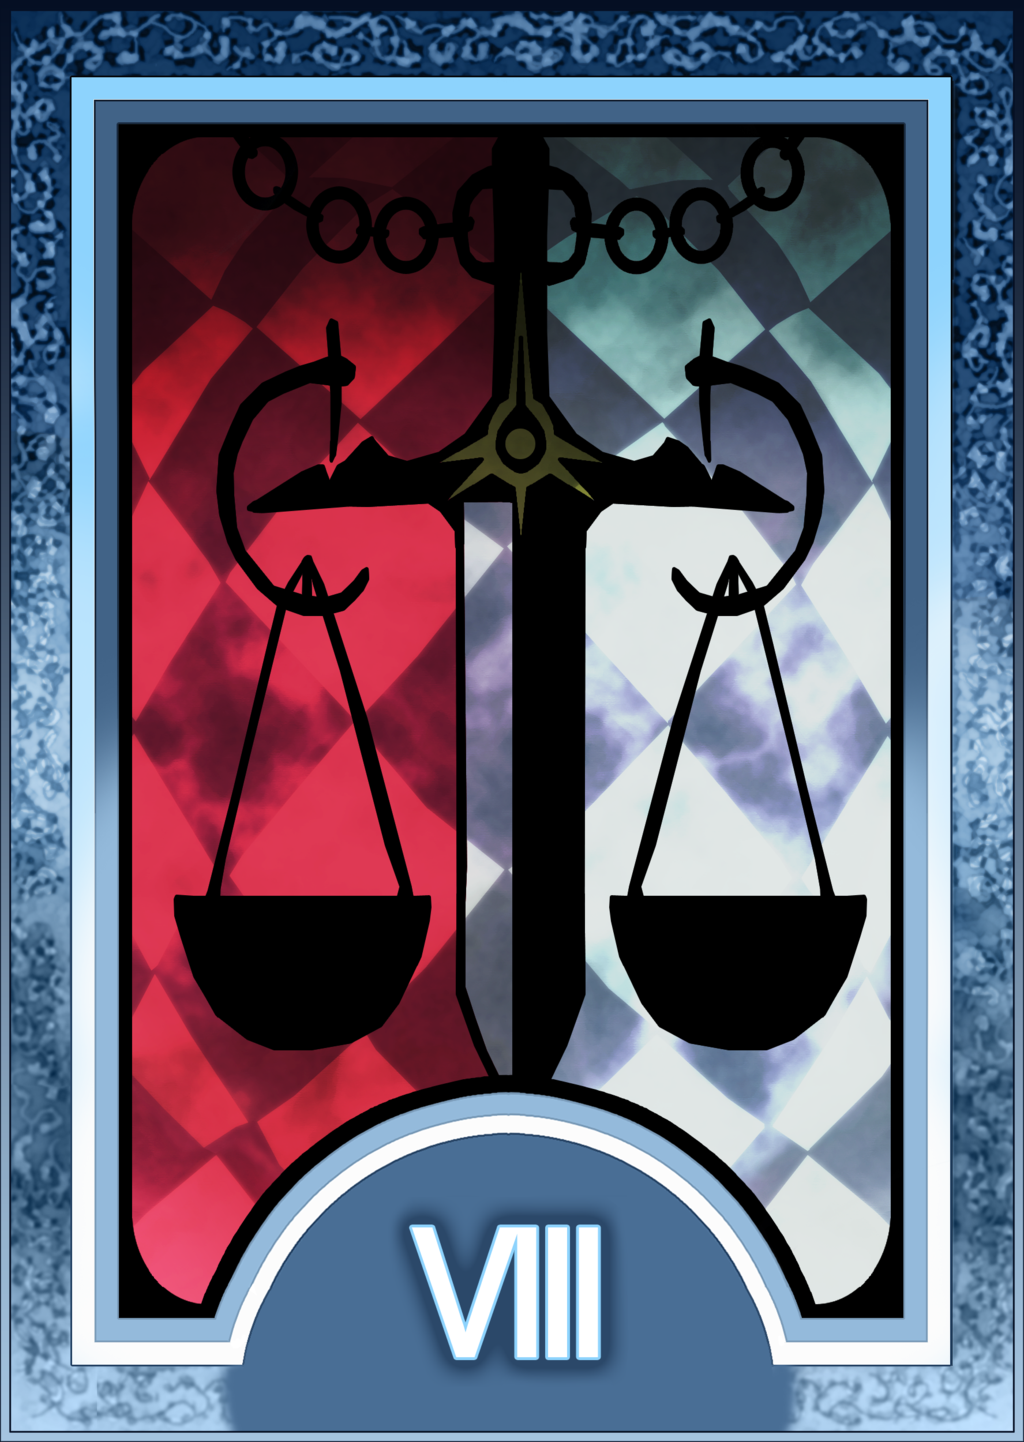 Persona 3 4 Tarot Card Deck Hr Justice Arcana By Enetirnel Persona Tarot Cards Tarot Card Decks Tarot